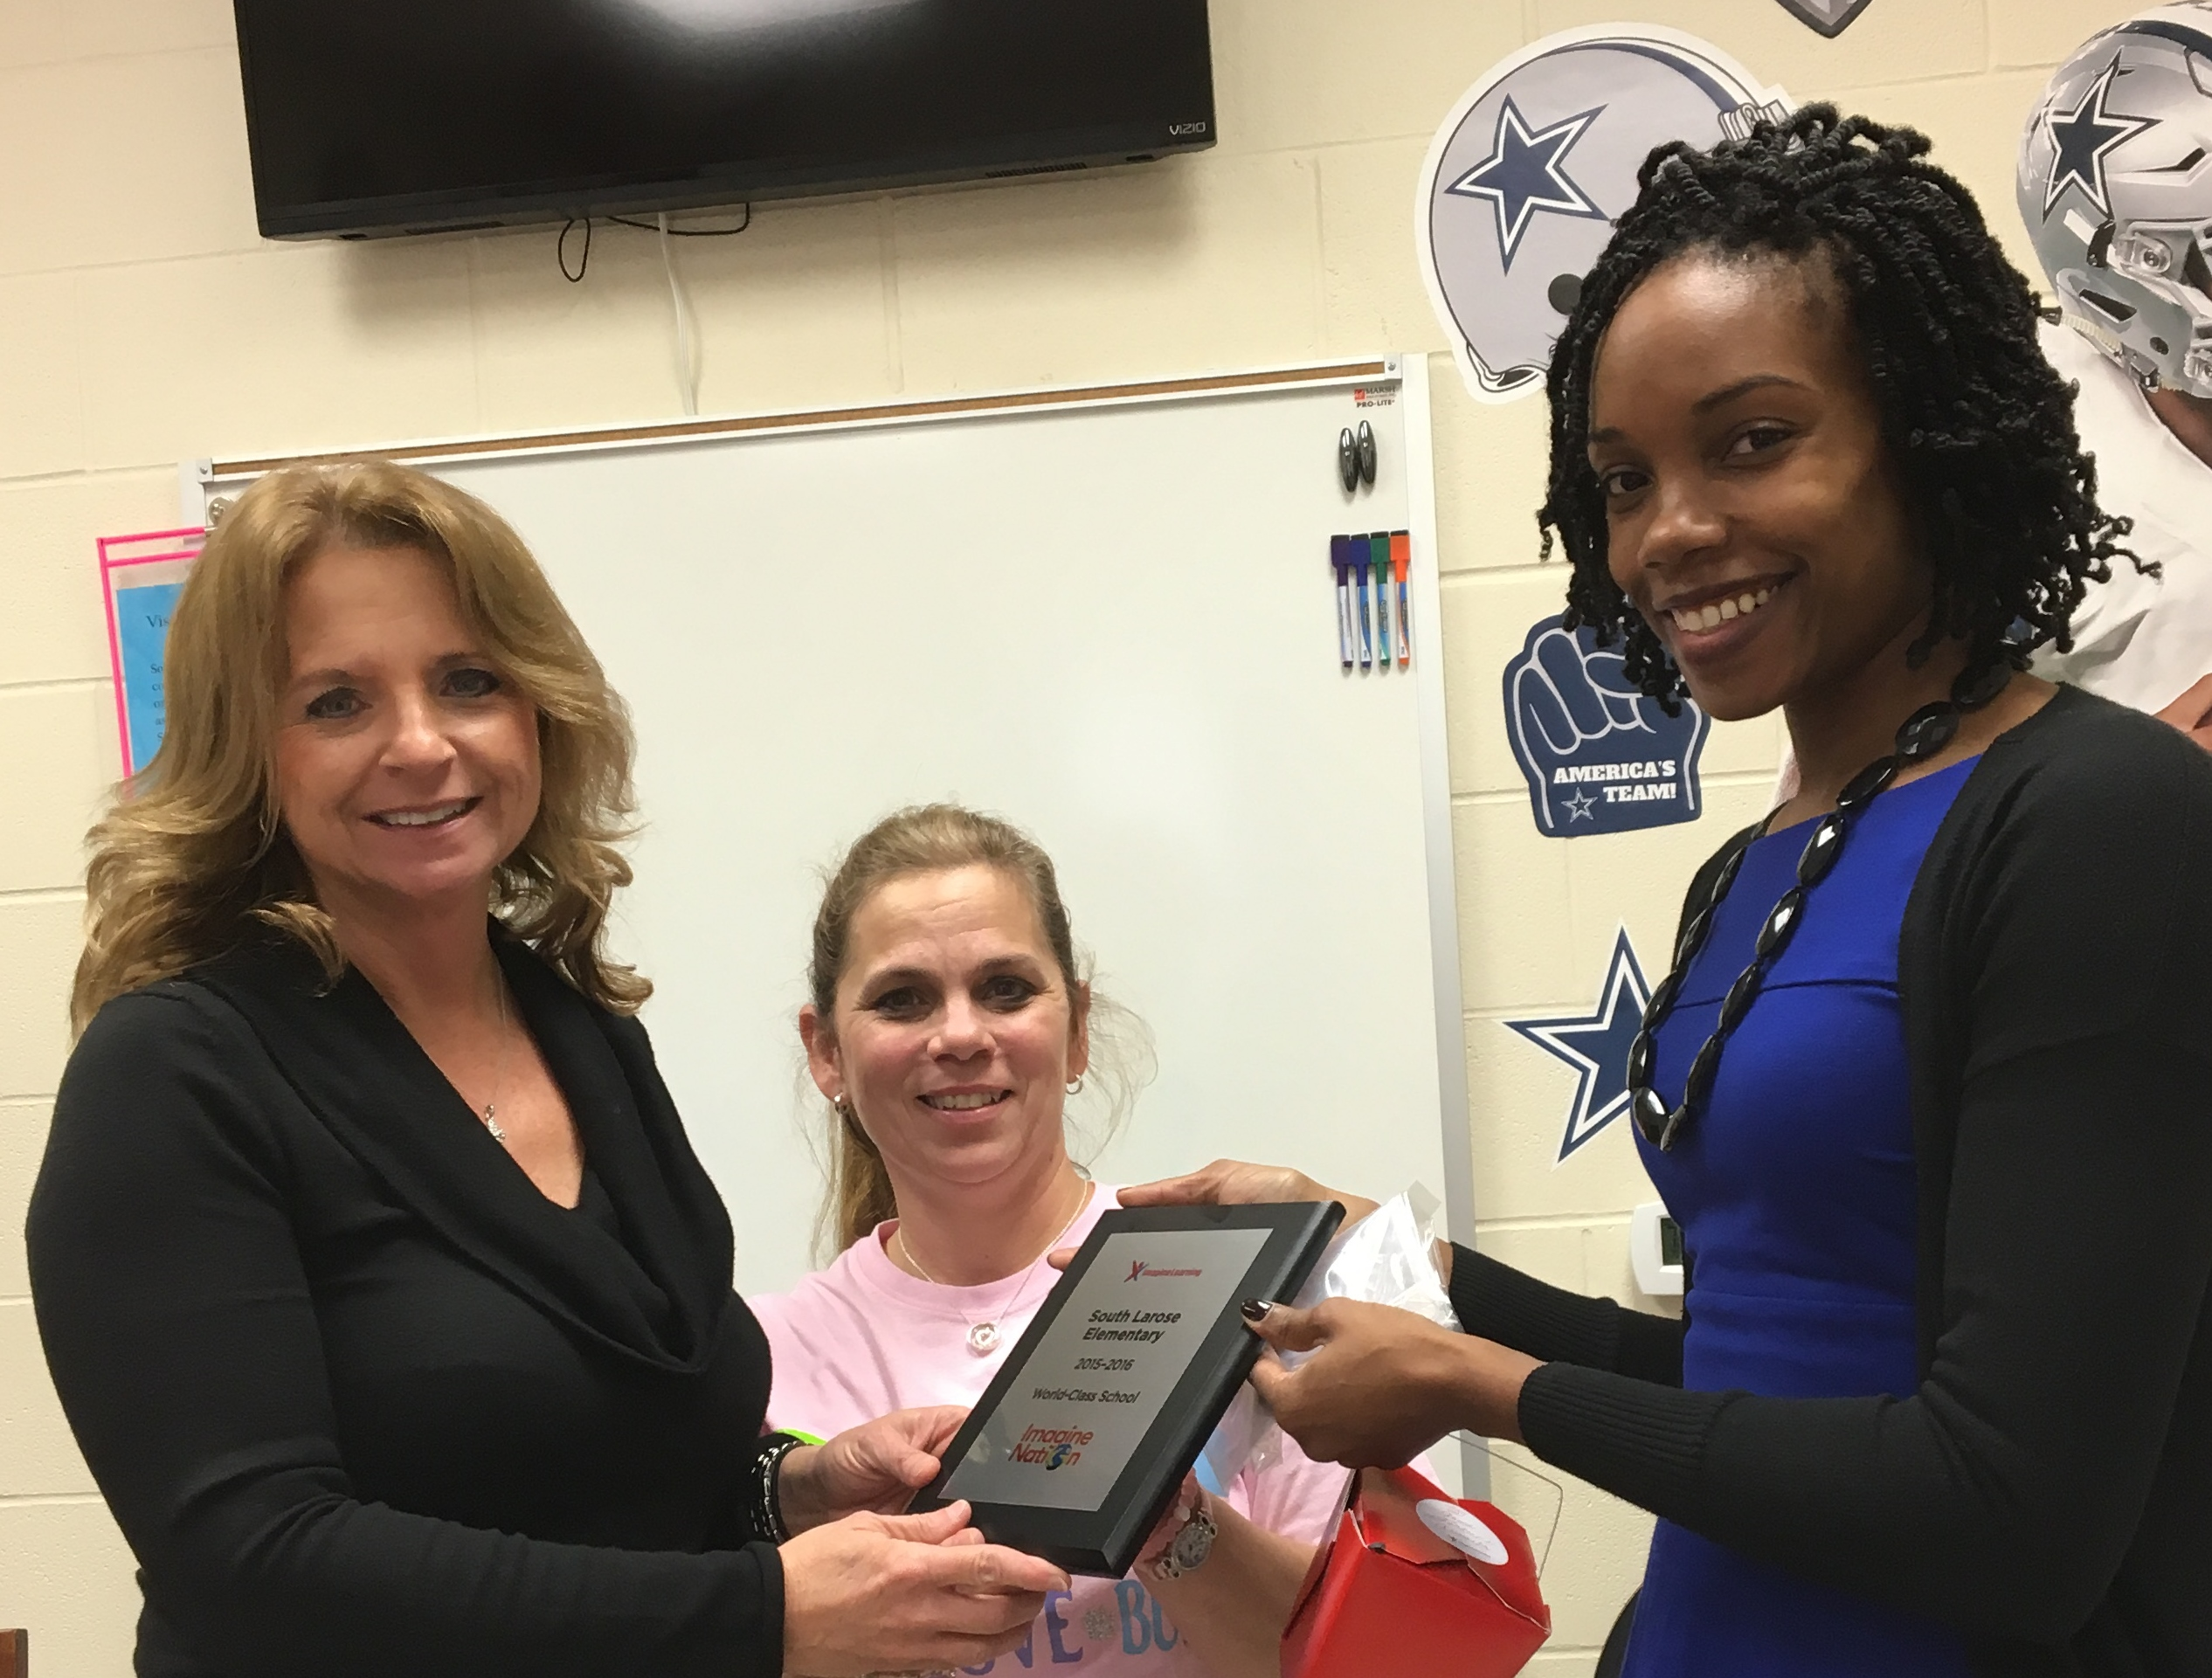 South Larose Elementary has received the 2015-2016 World Class Imagine School Award.